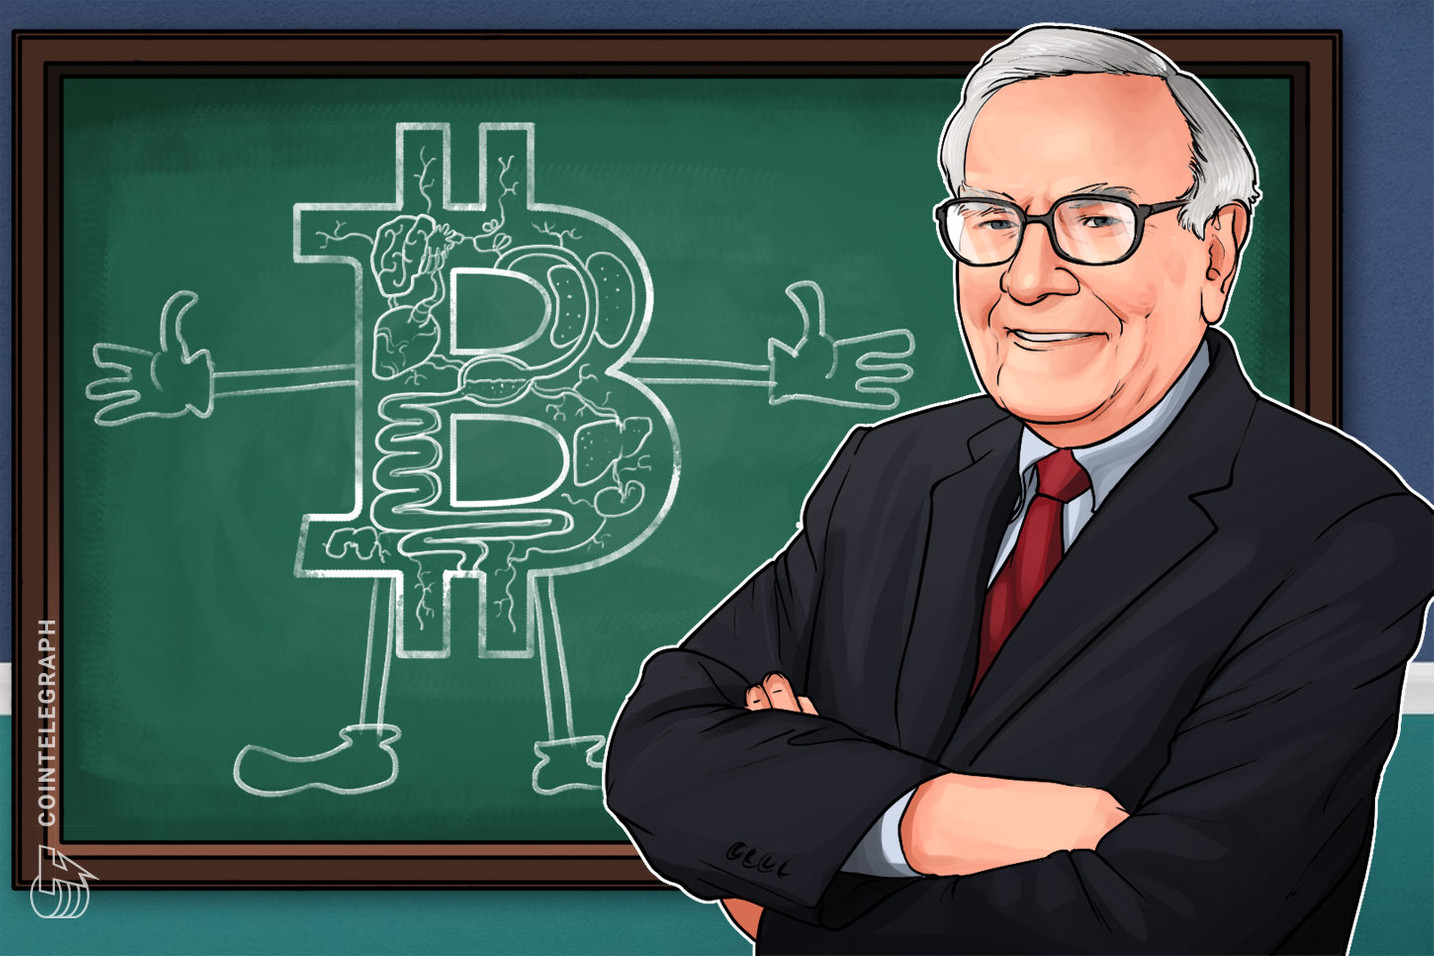 Berkshire Hathaway CEO Warren Buffett Offers Fresh Metaphor for Bitcoin as a 'Seashell'